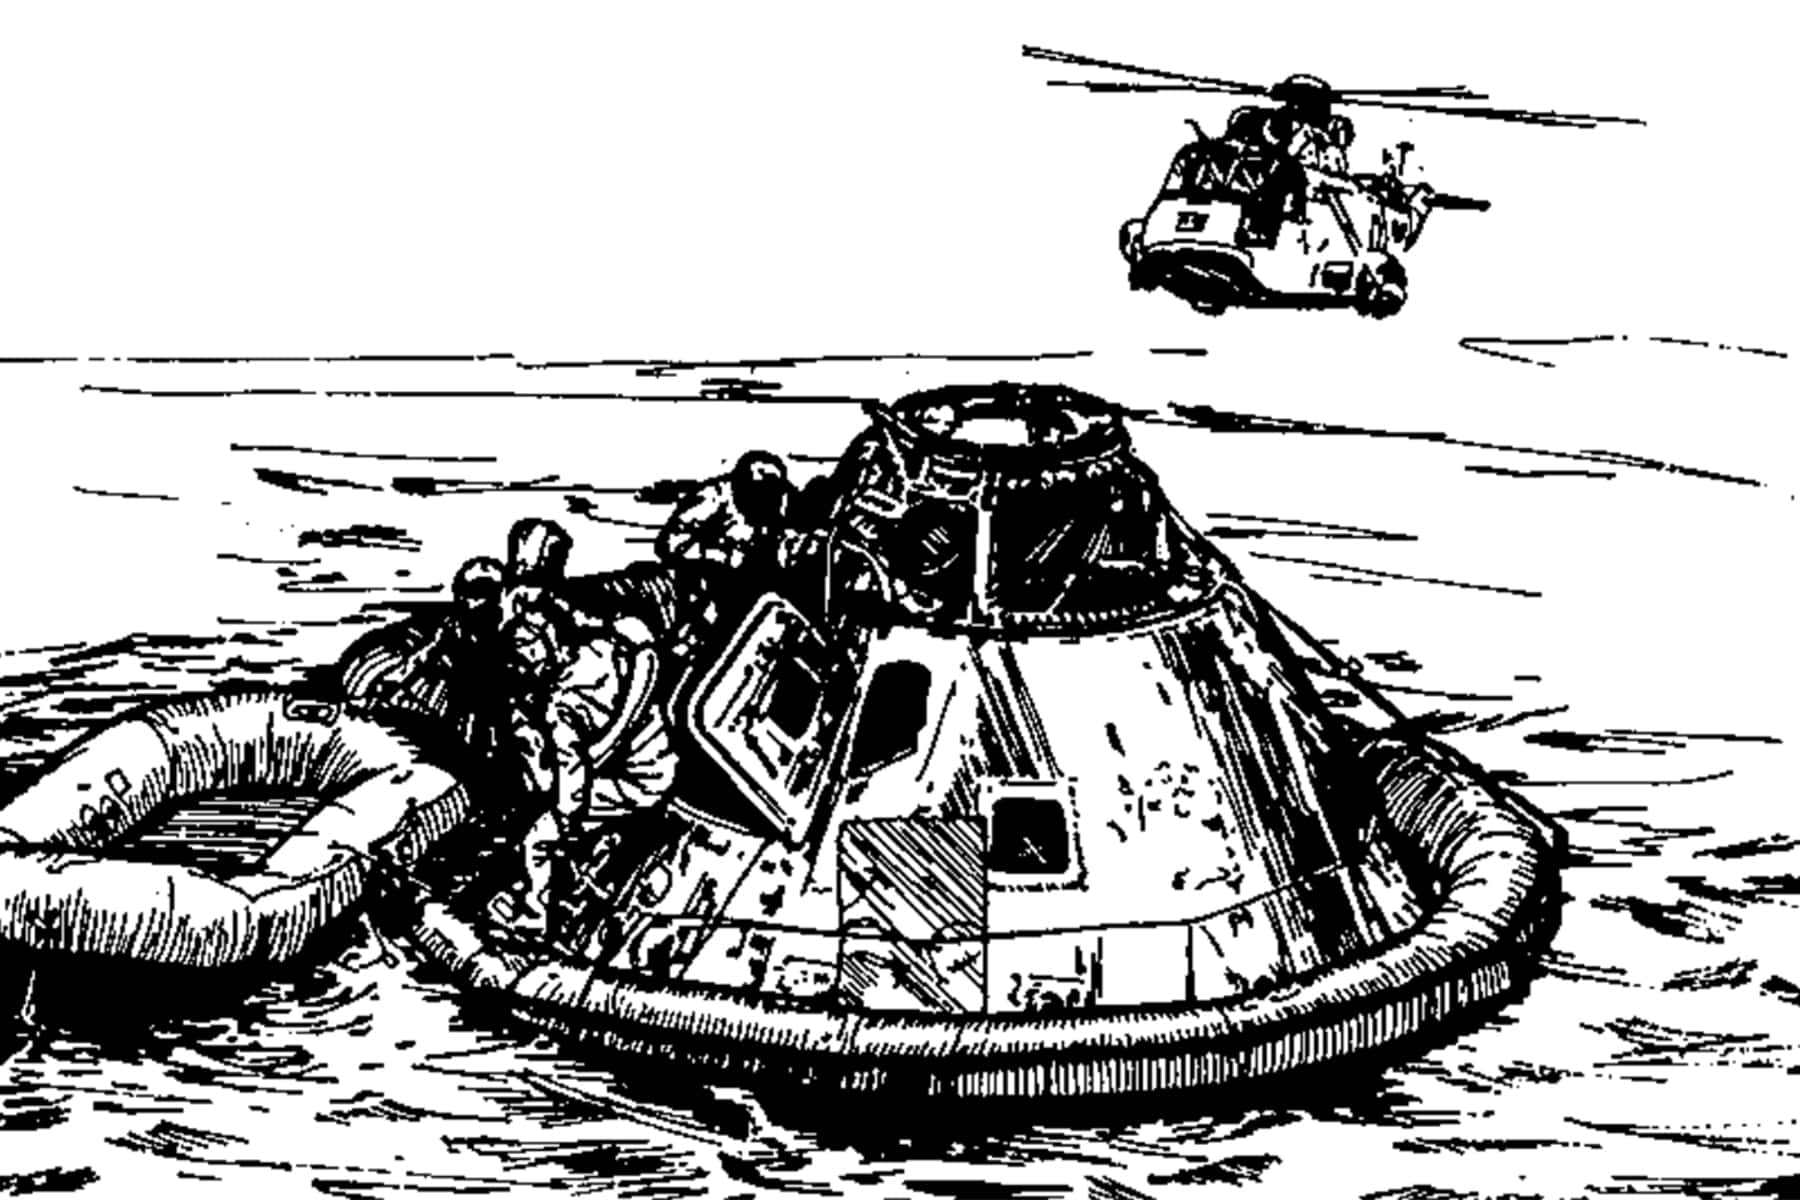 Apollo 11: Remembering the race to put a footprint on the